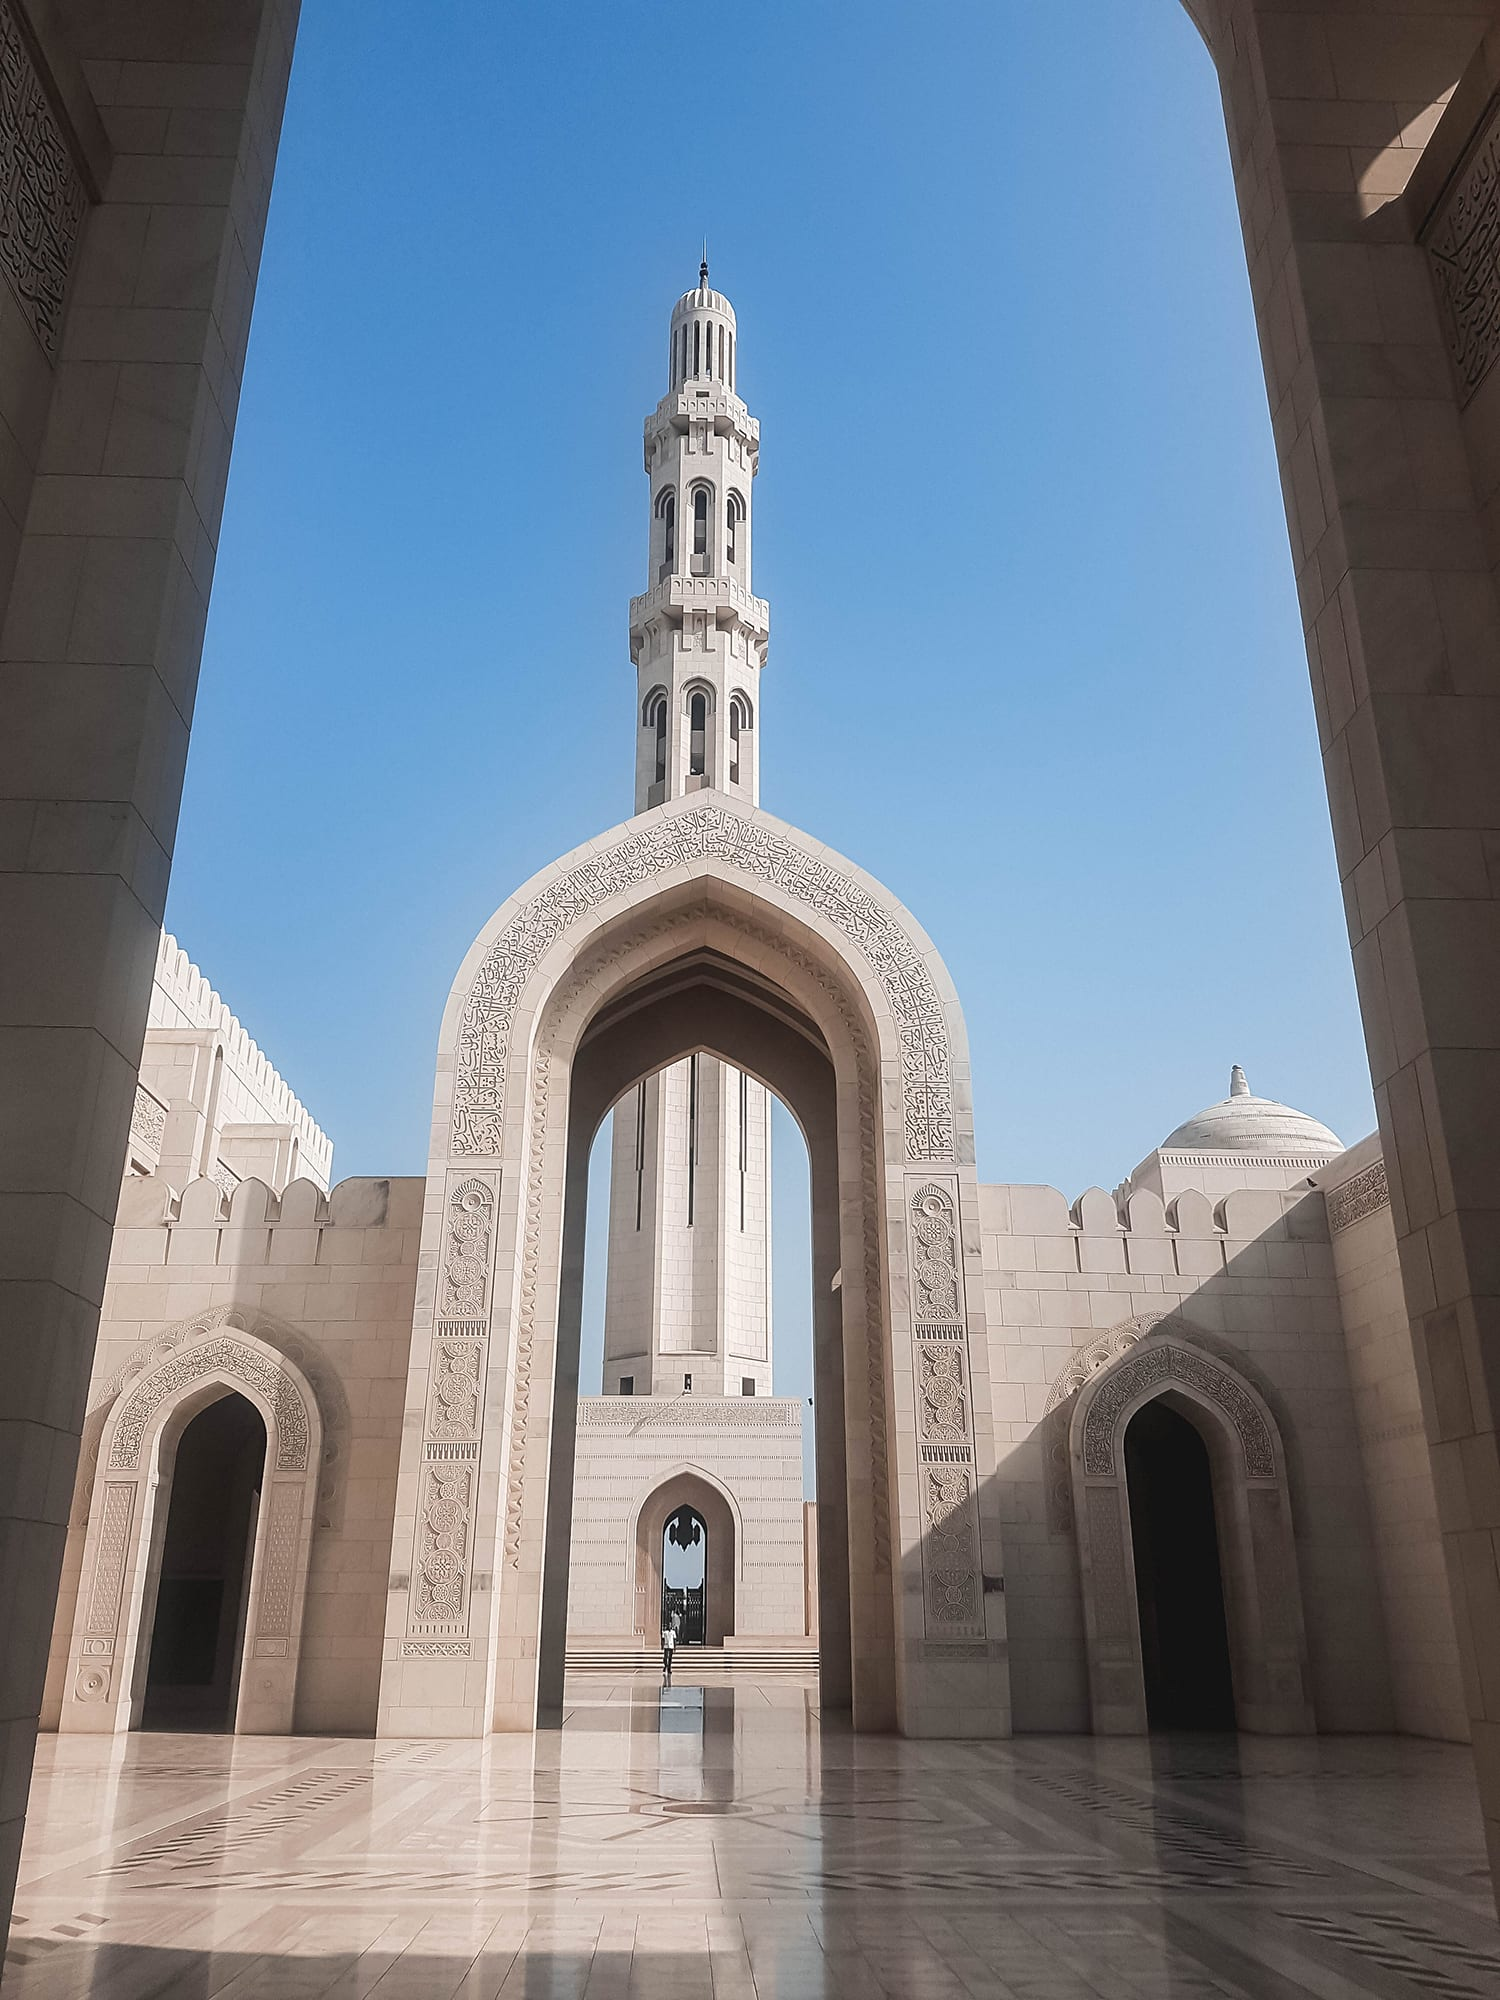 Sultan Qaboos Grand Mosque in Muscat is an example of Islamic architecture in Oman